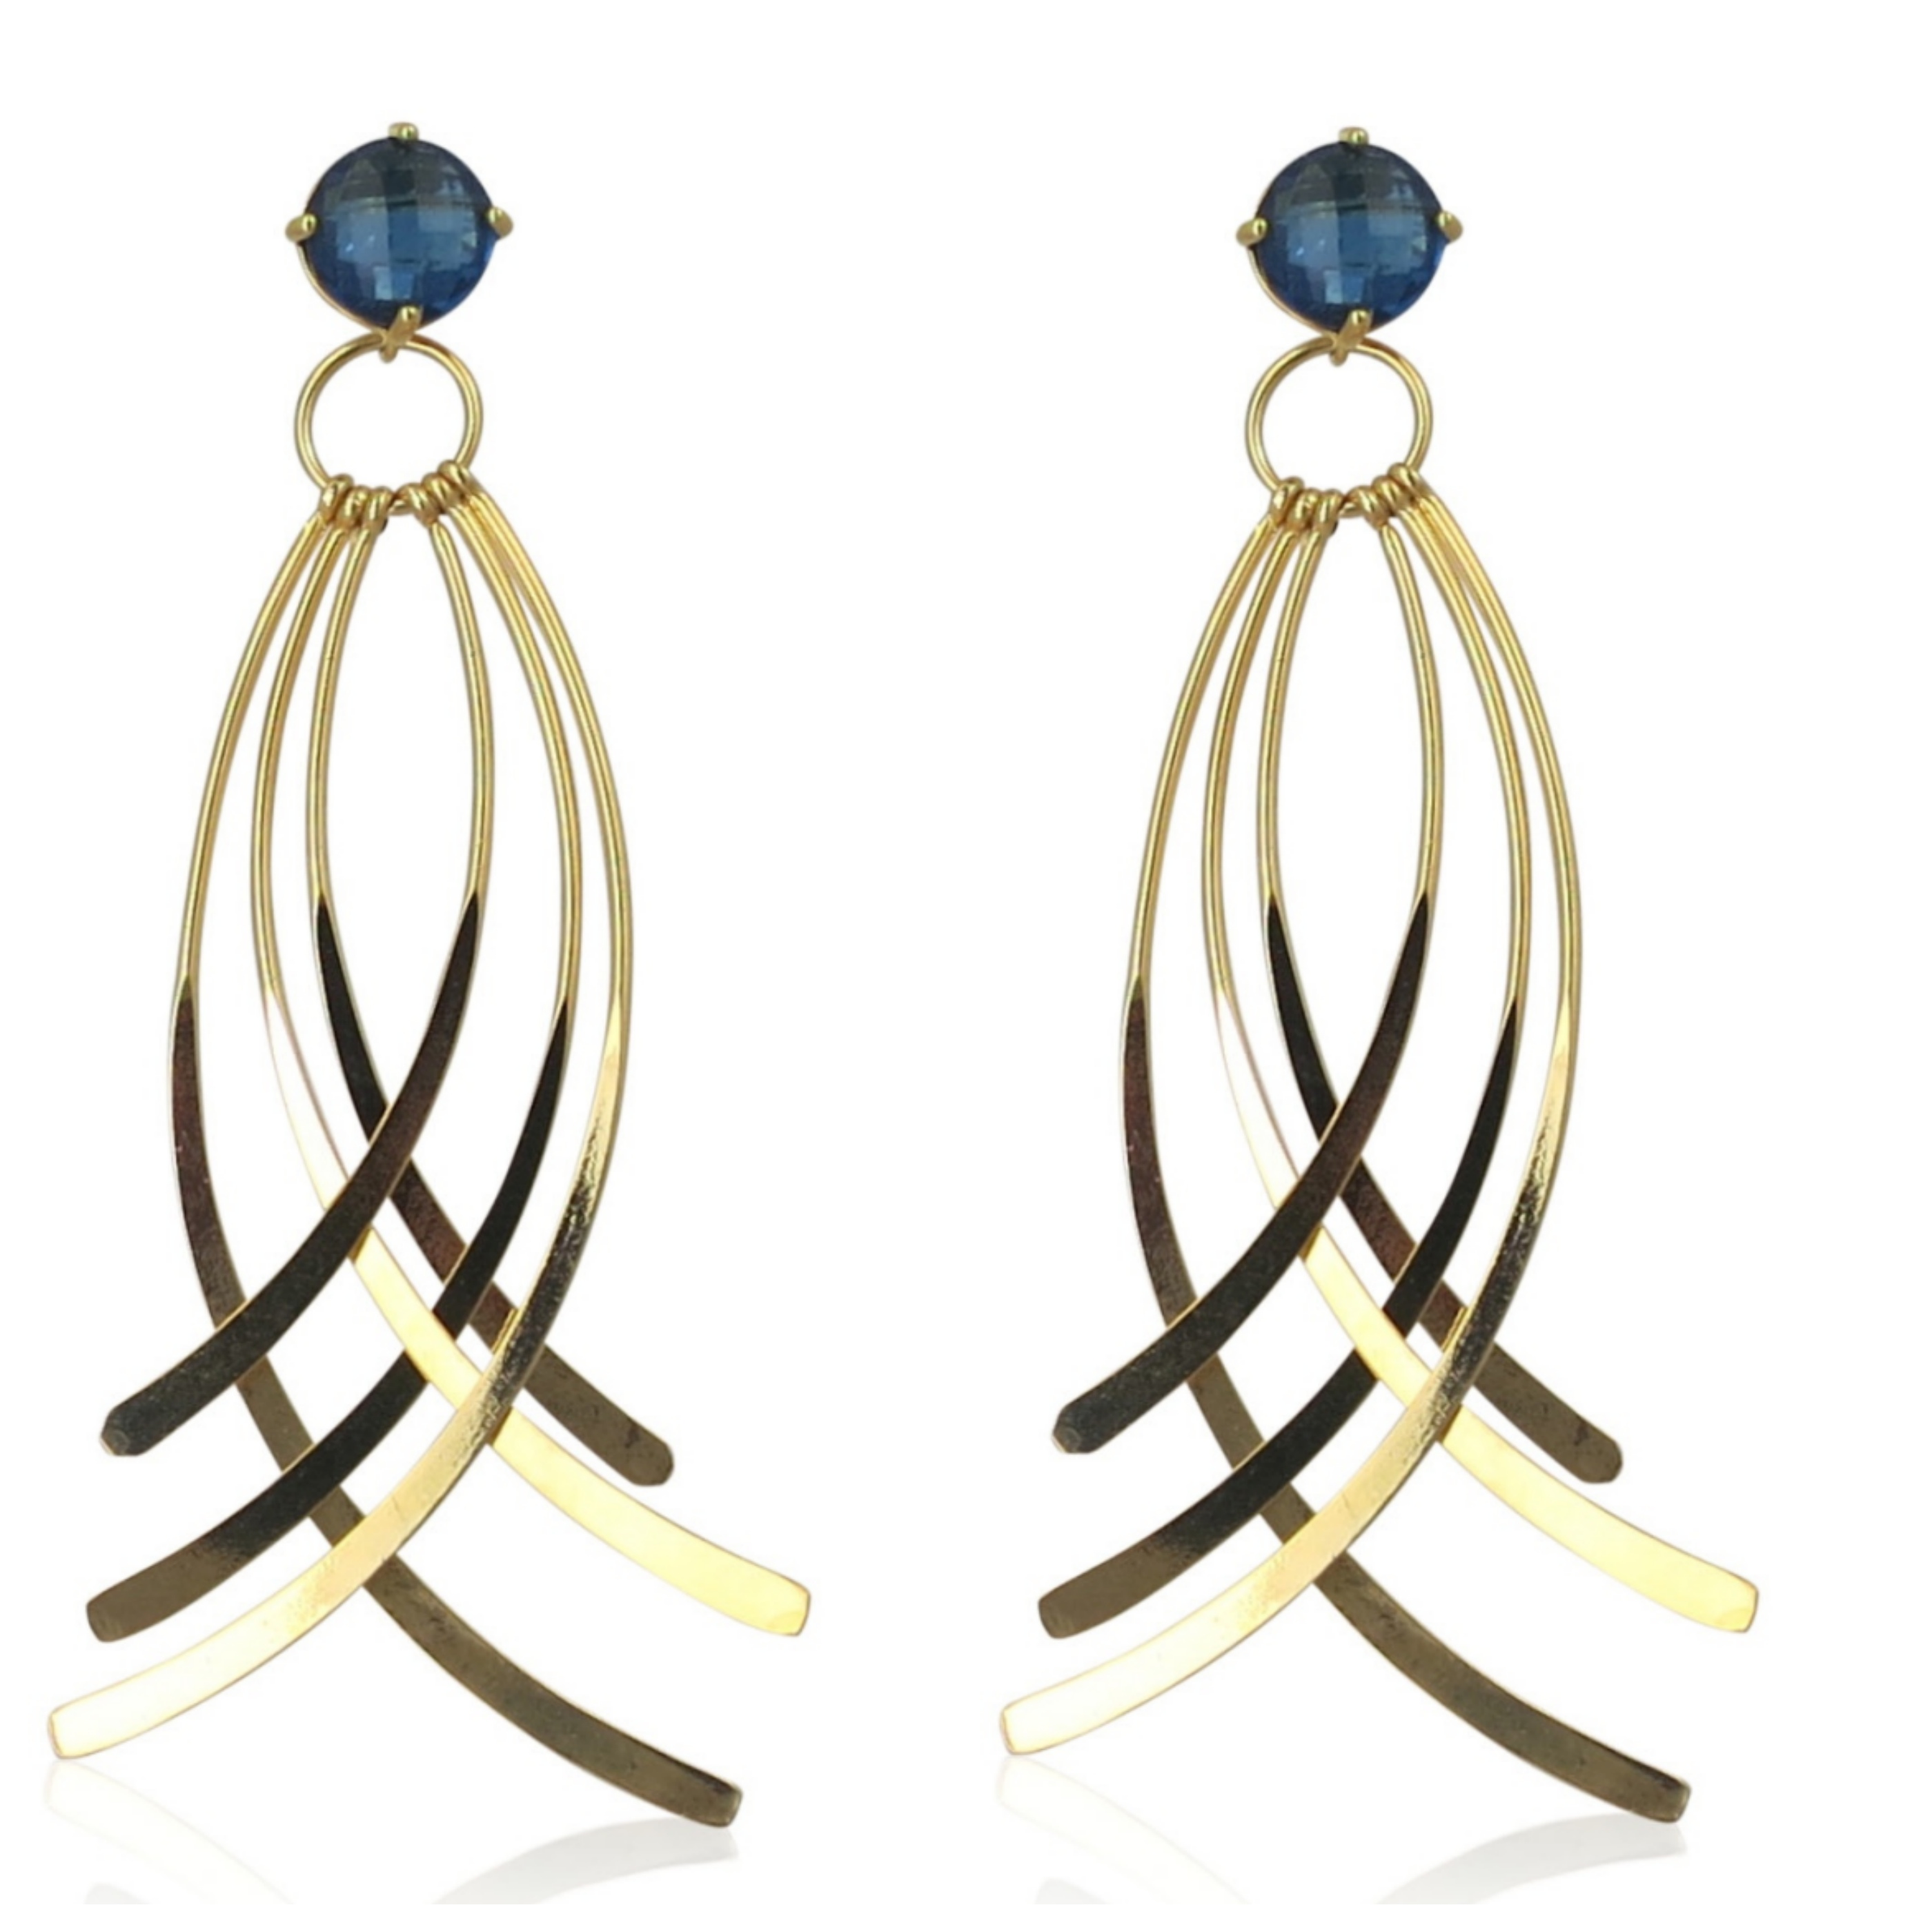 Lara Design - Earrings Garlands a